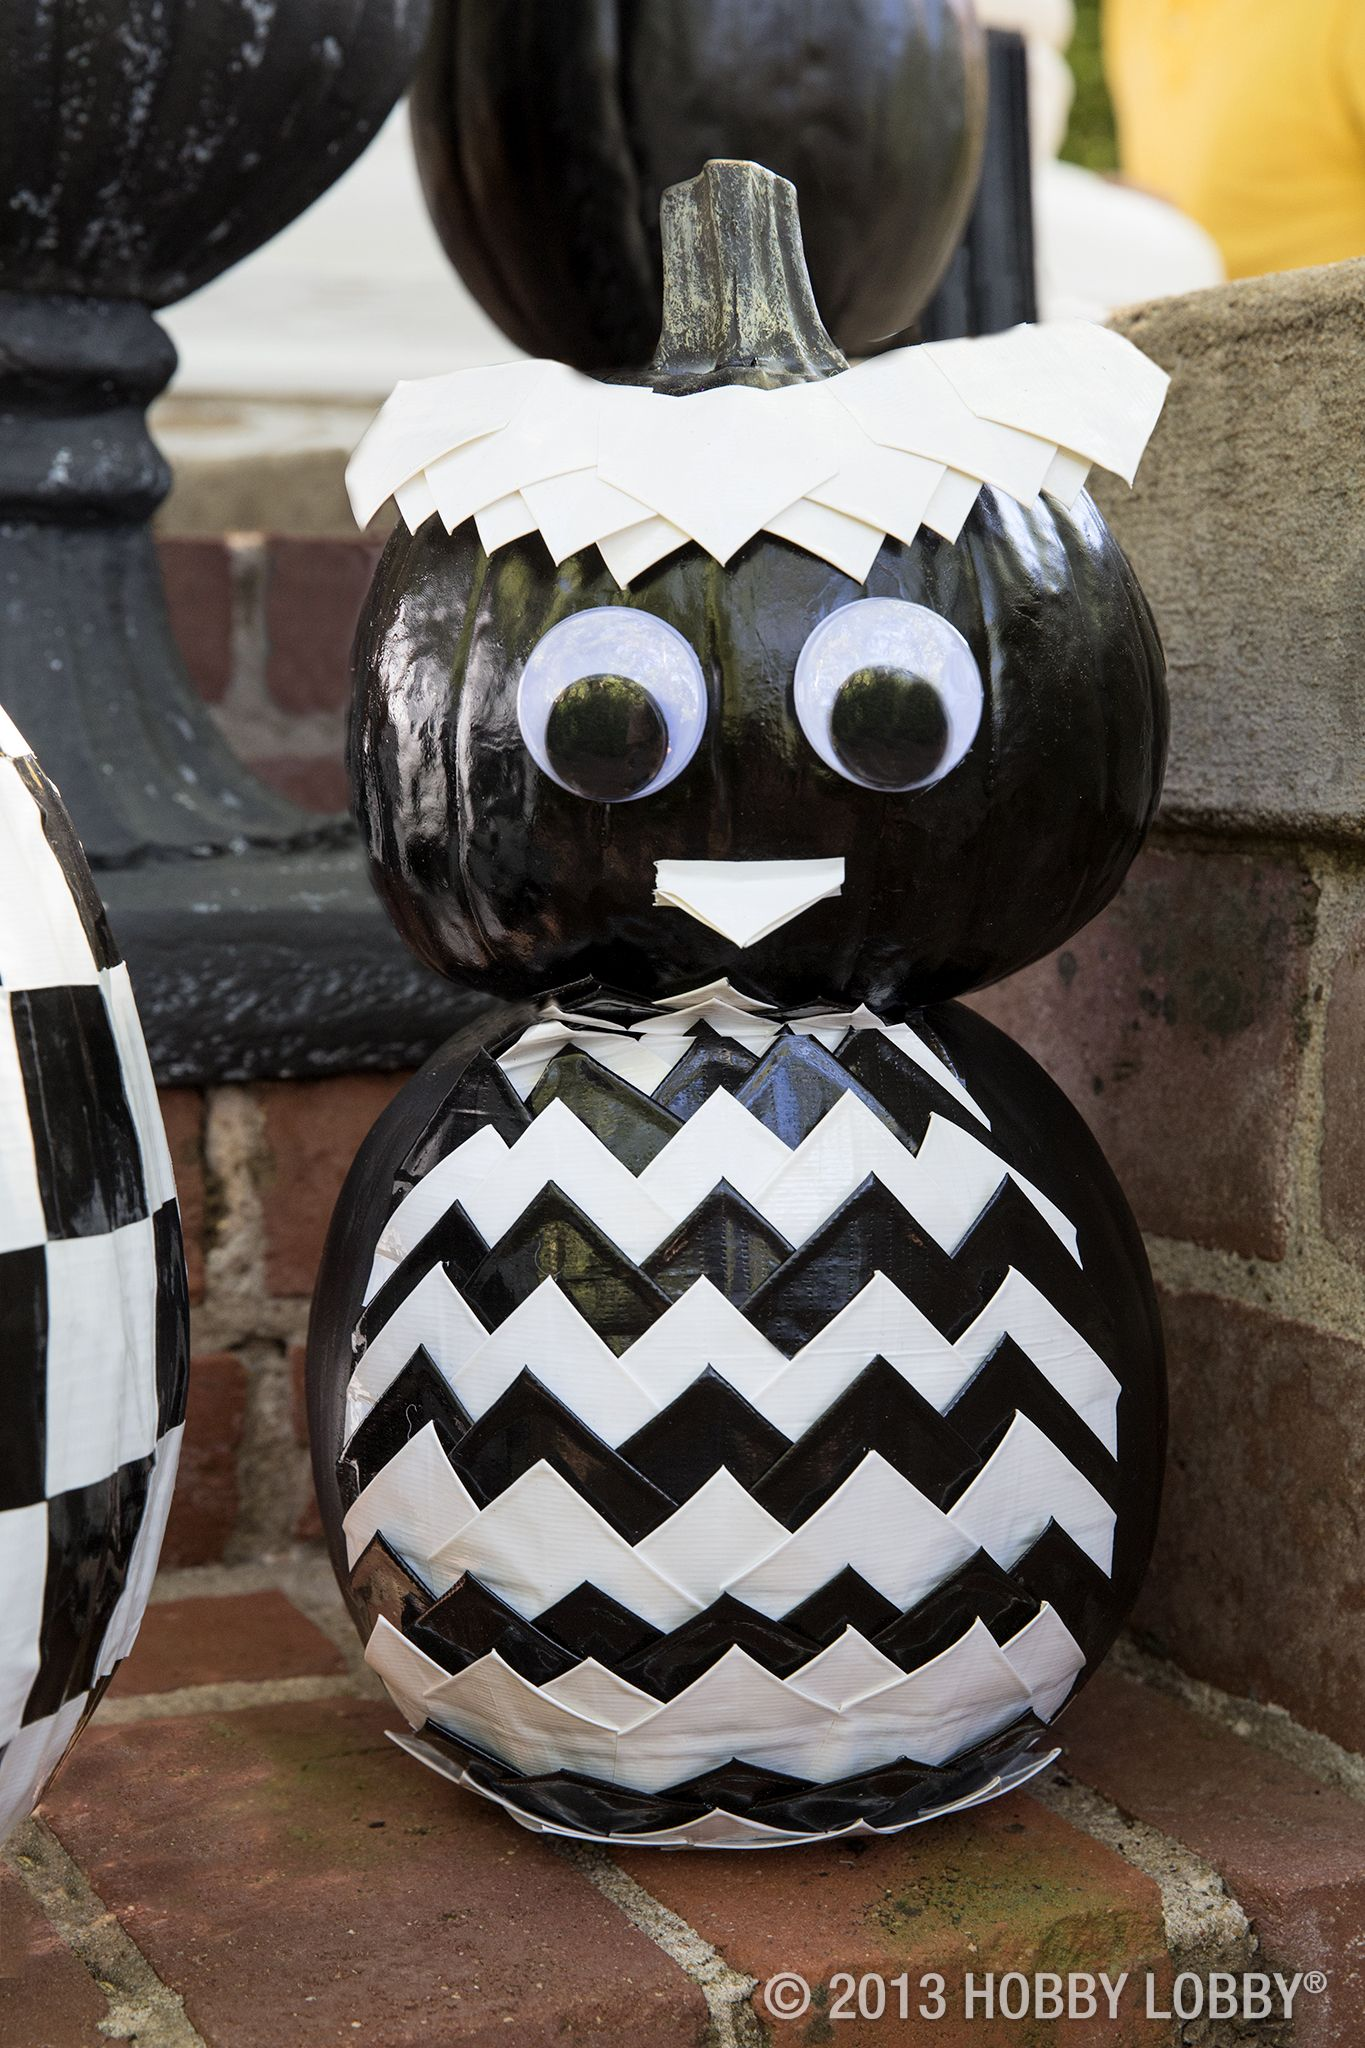 Use Duck tape and googly eyes to create a welcoming pumpkin for your